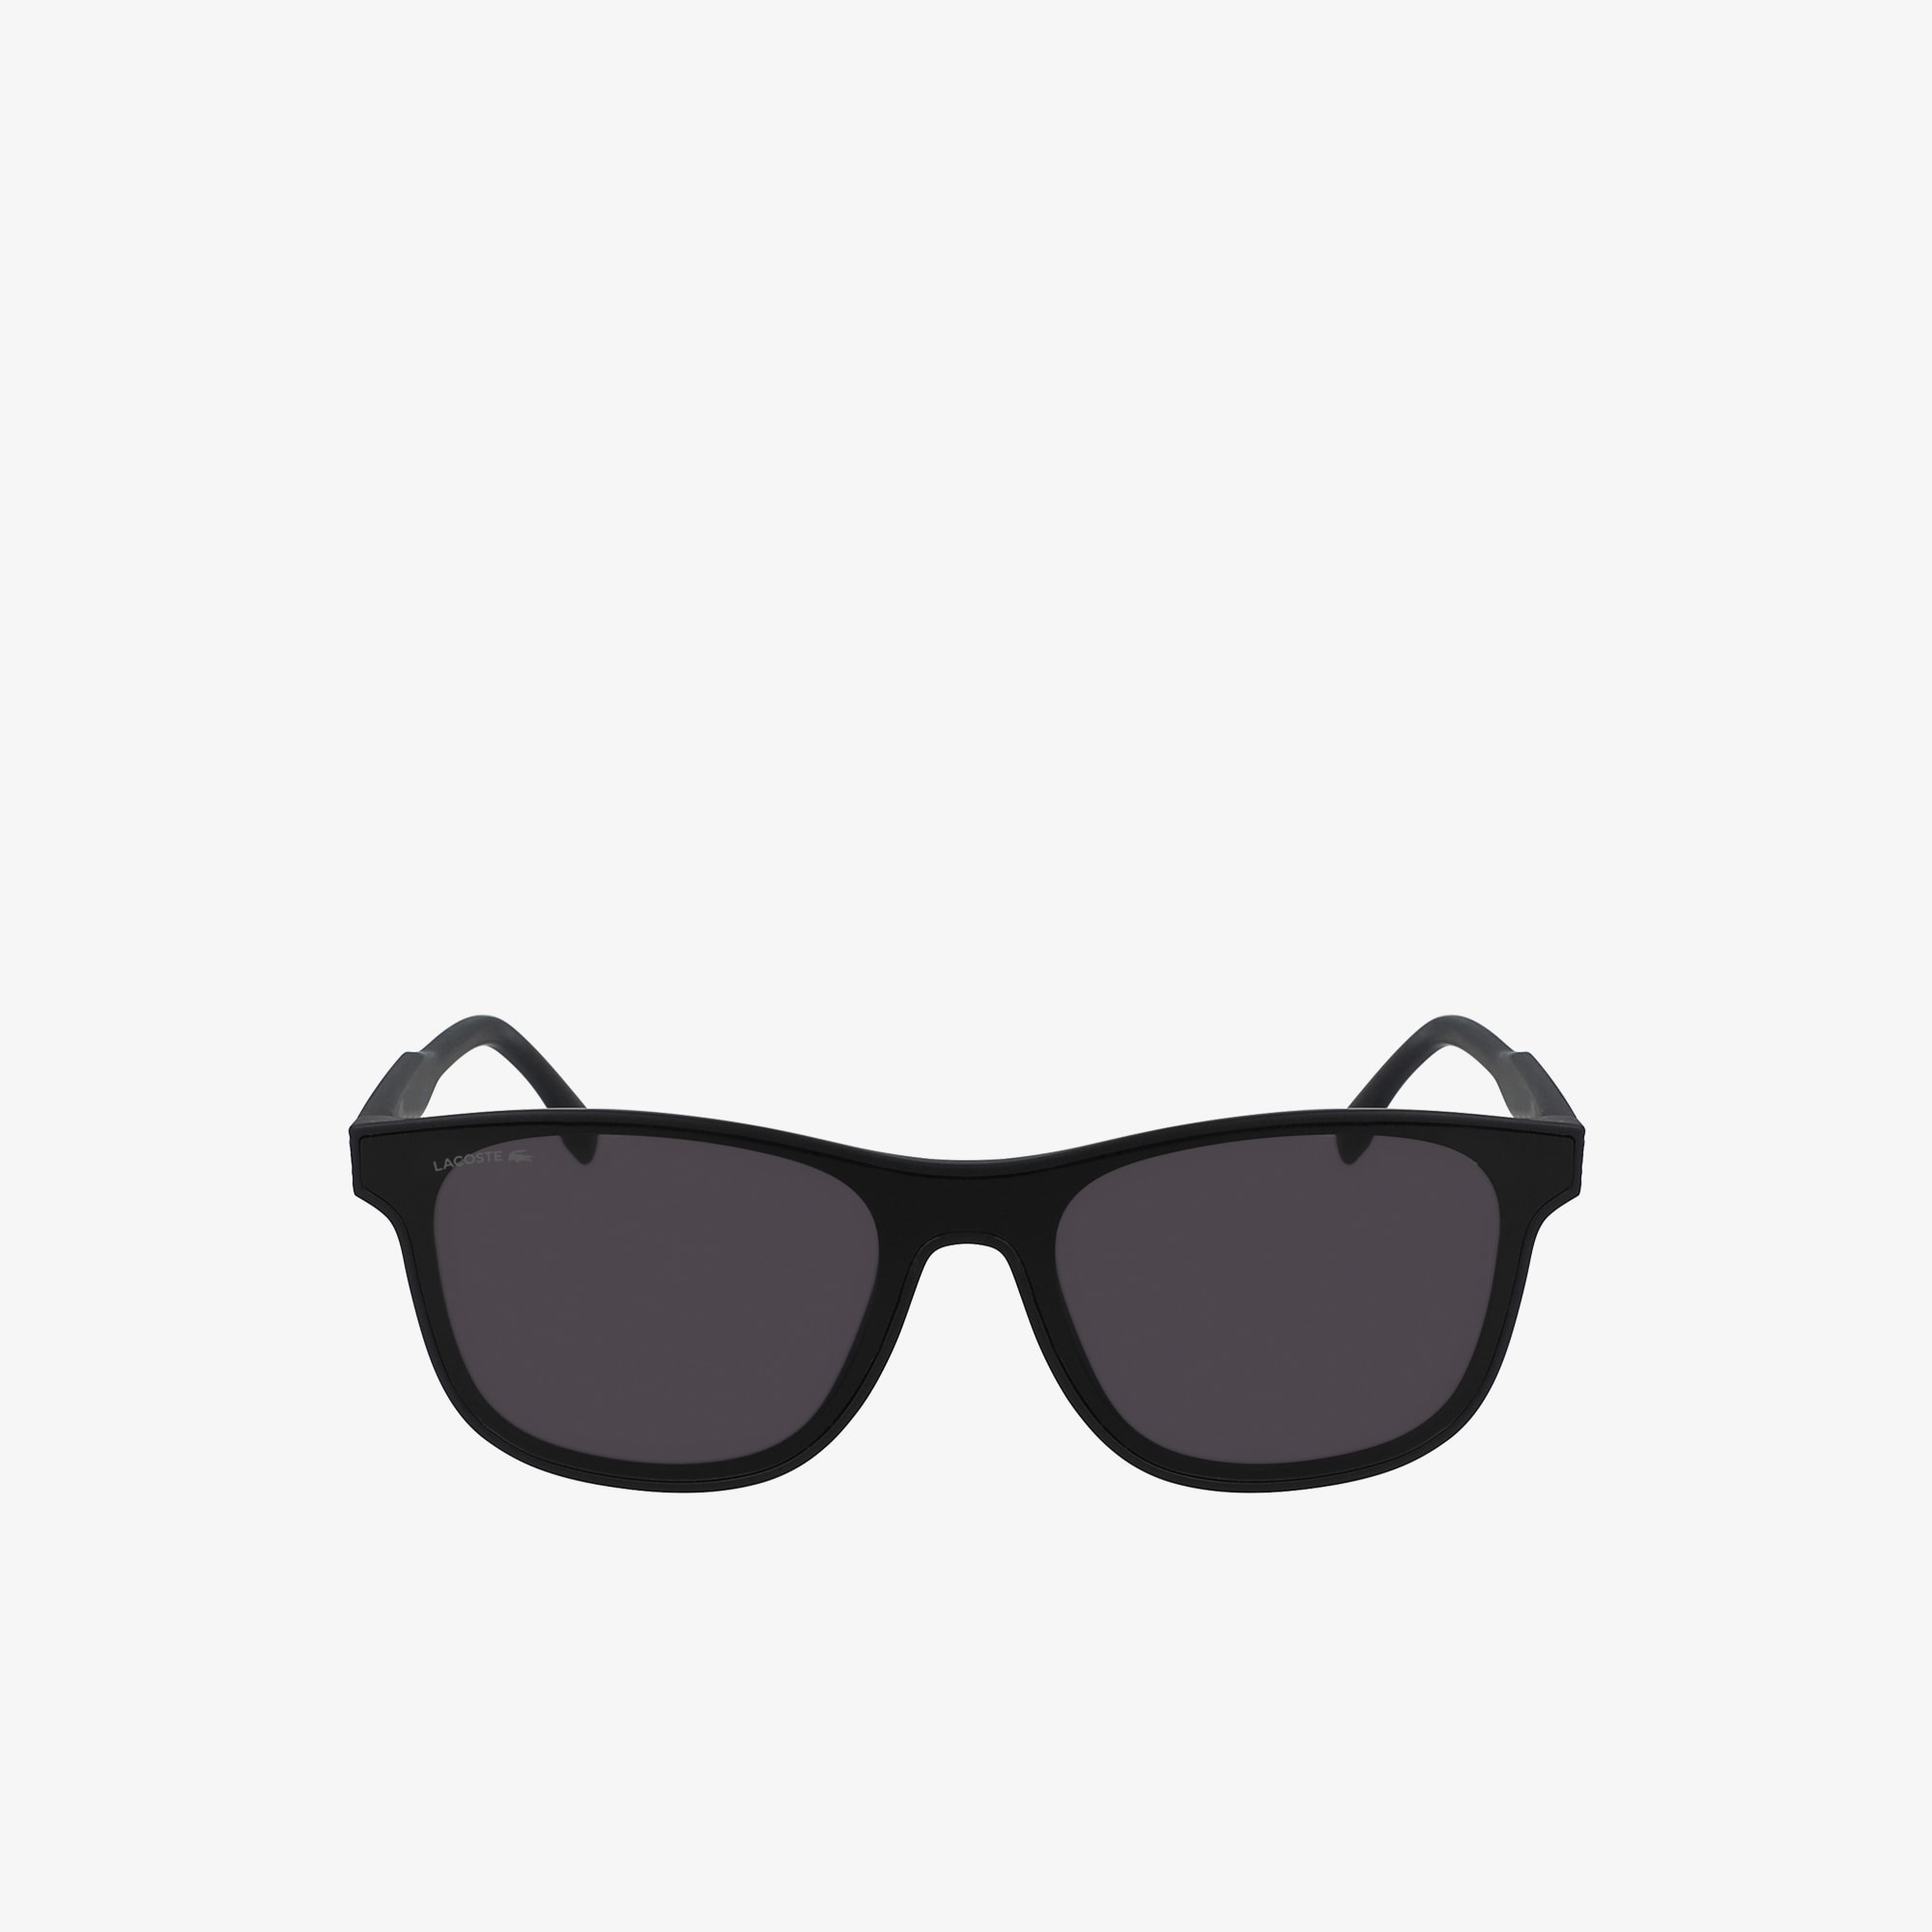 Shield Plastic L.12.12 Sunglasses